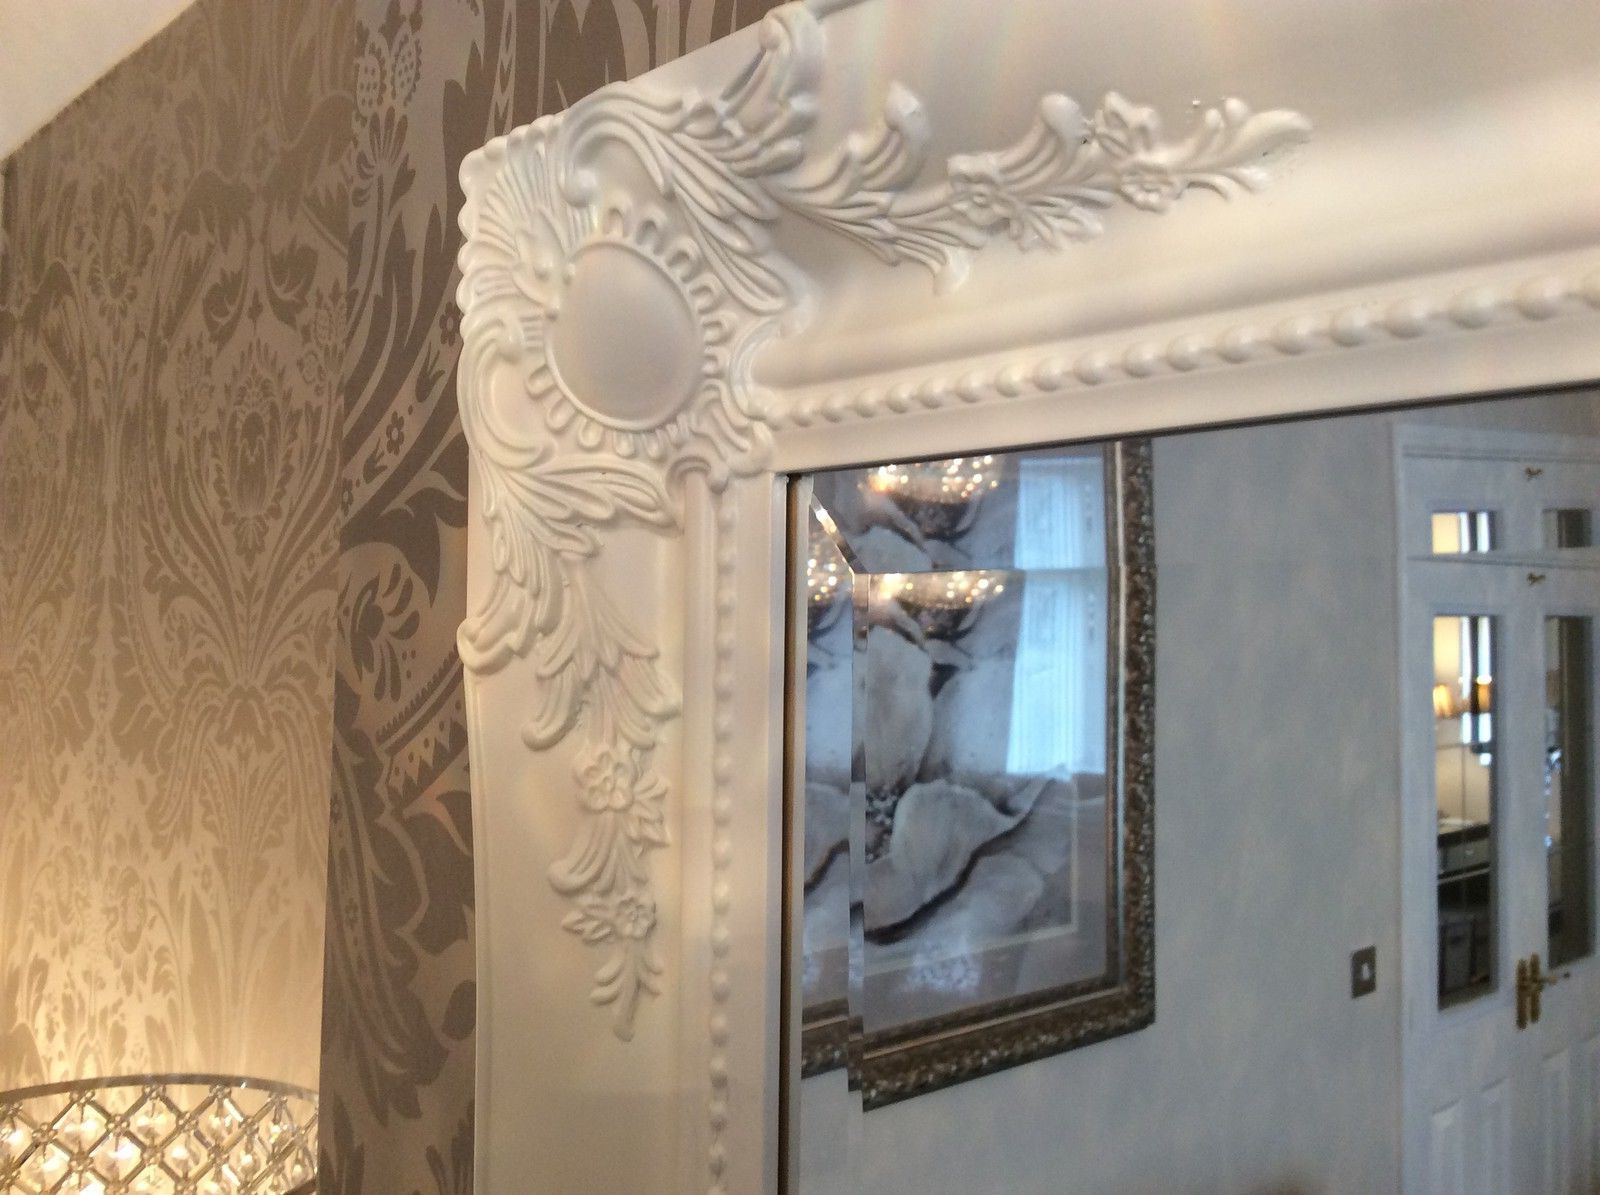 Widely Used Large White Shabby Chic Wall Mirror – Large Range Of Sizes Inside White Shabby Chic Wall Mirrors (View 13 of 20)